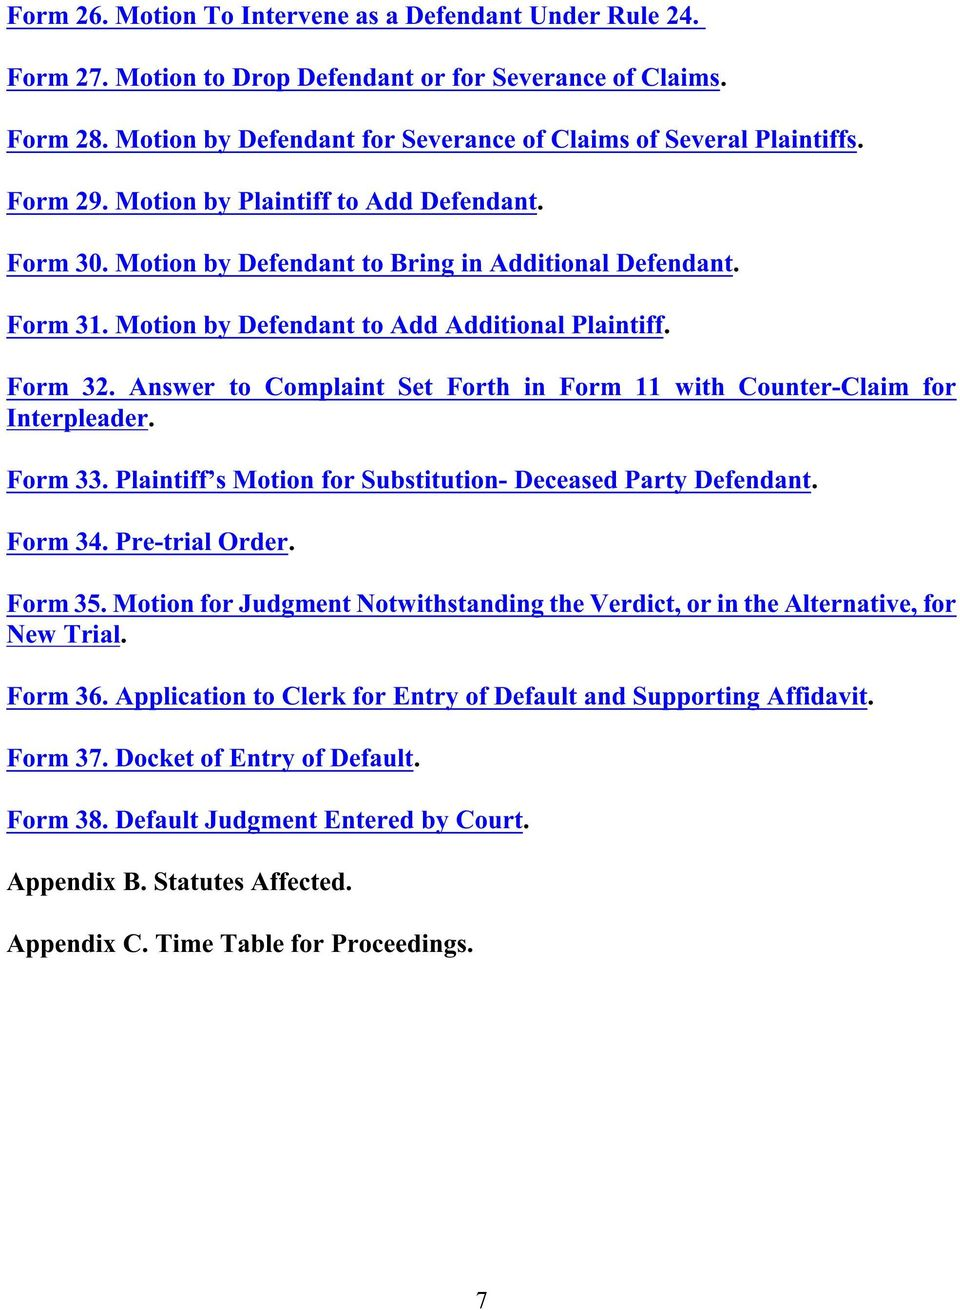 Mississippi Rules Of Civil Procedure >> Mississippi Rules Of Civil Procedure Pdf